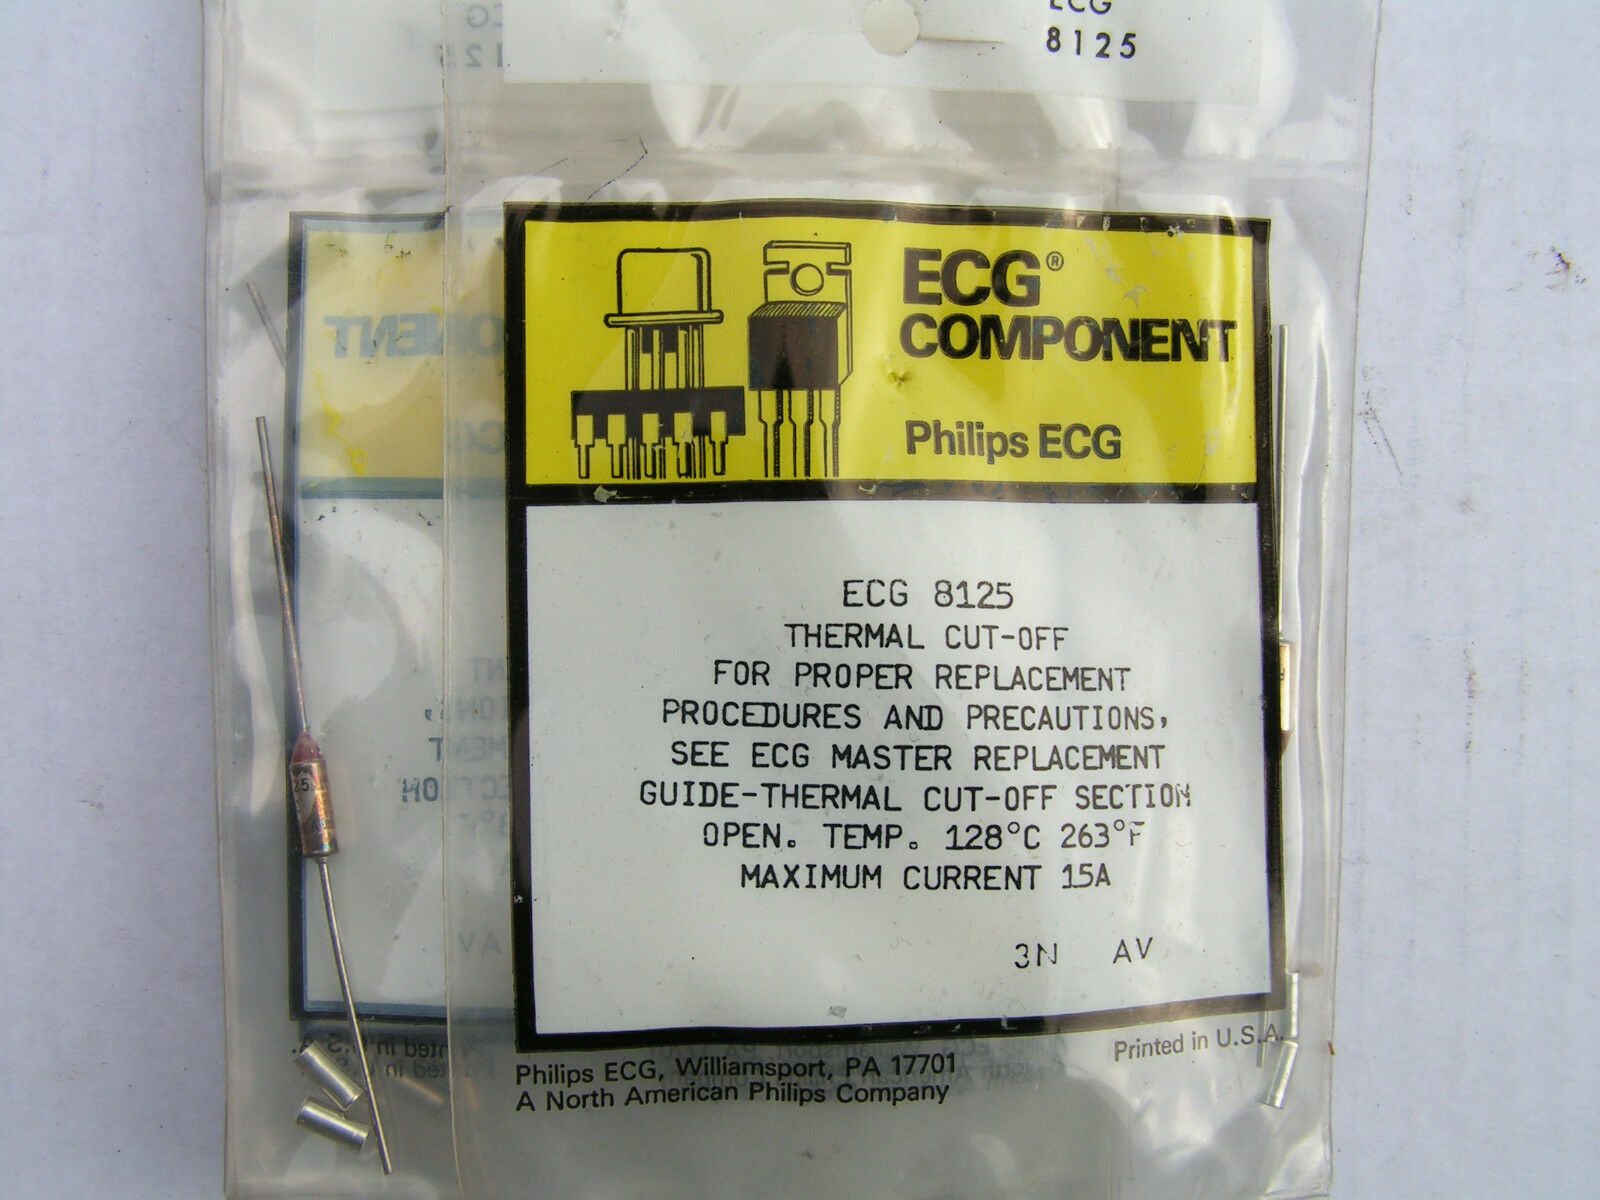 Philips Ecg Master Replacement Guide Pdf